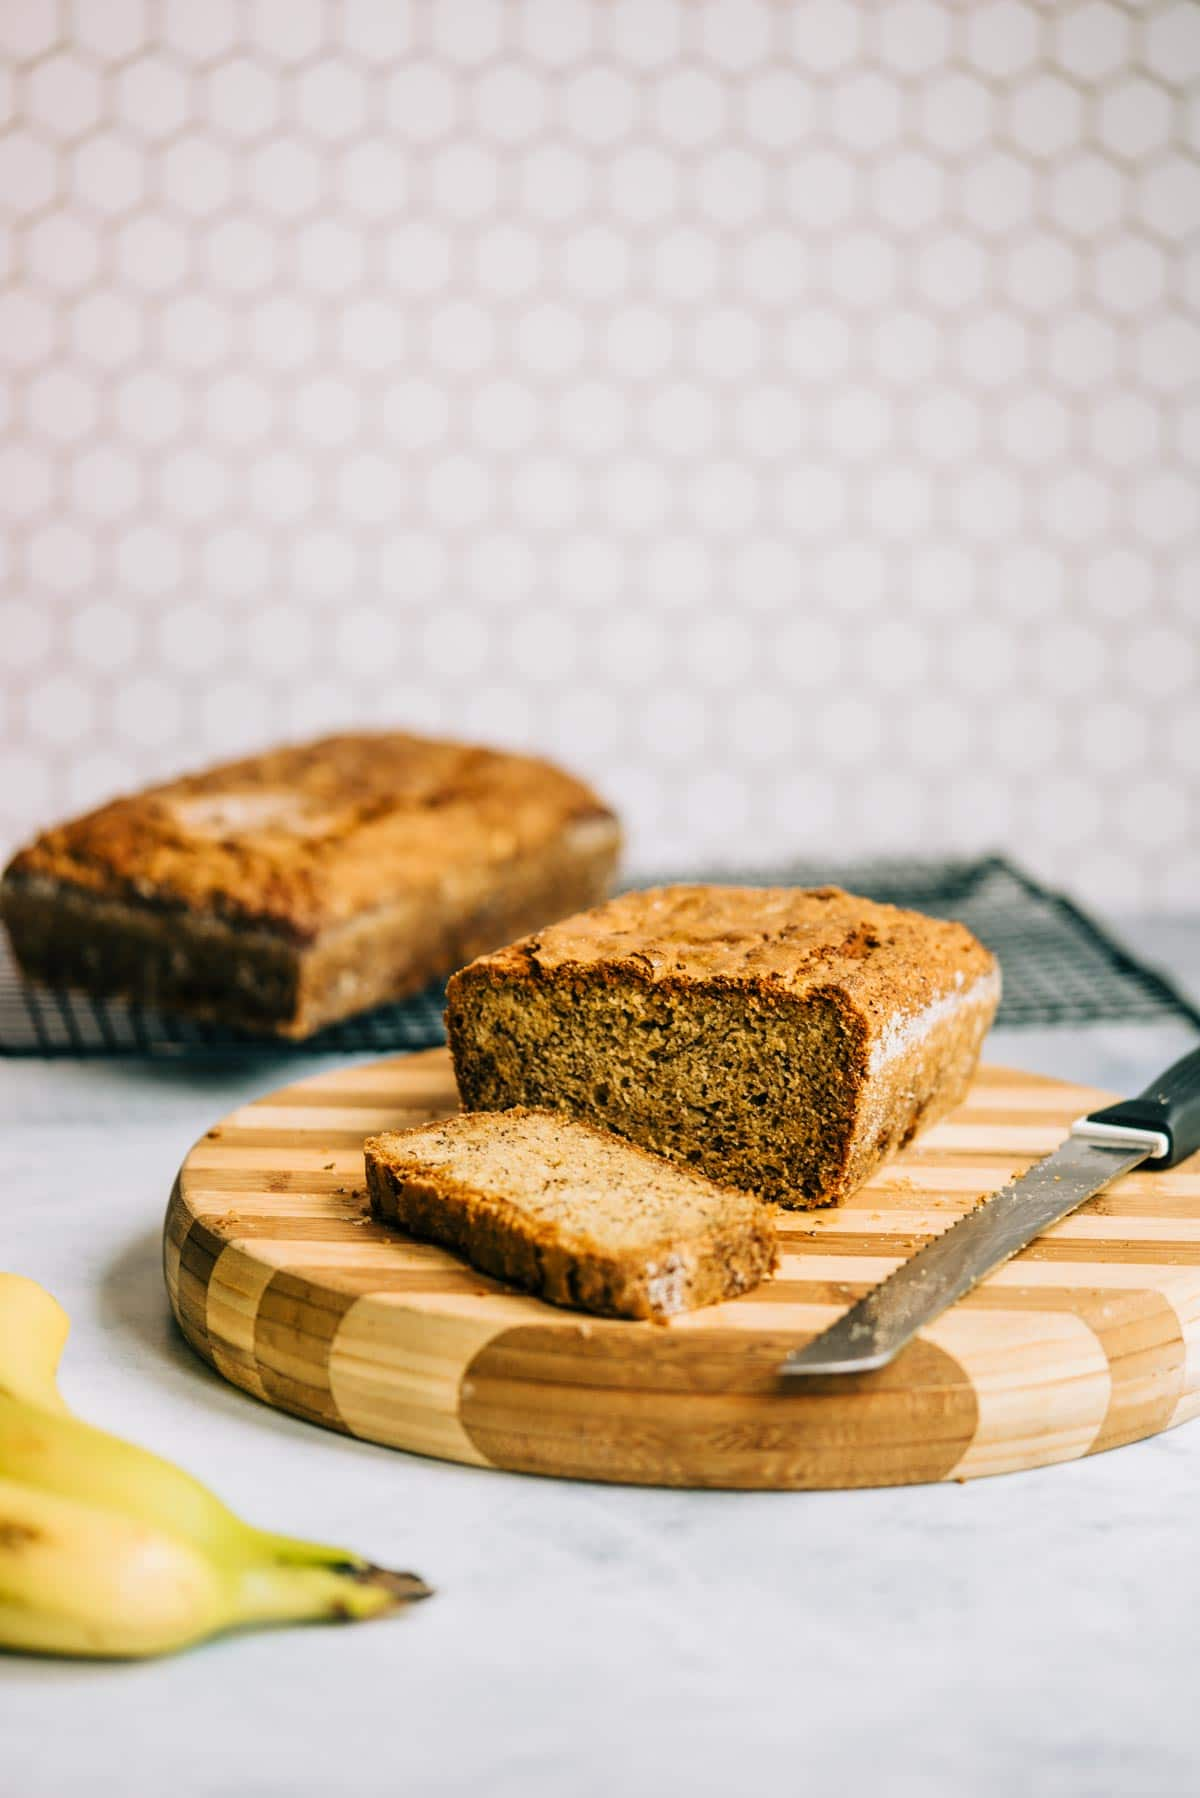 A loaf of sliced banana bread on a striped cutting board with knife